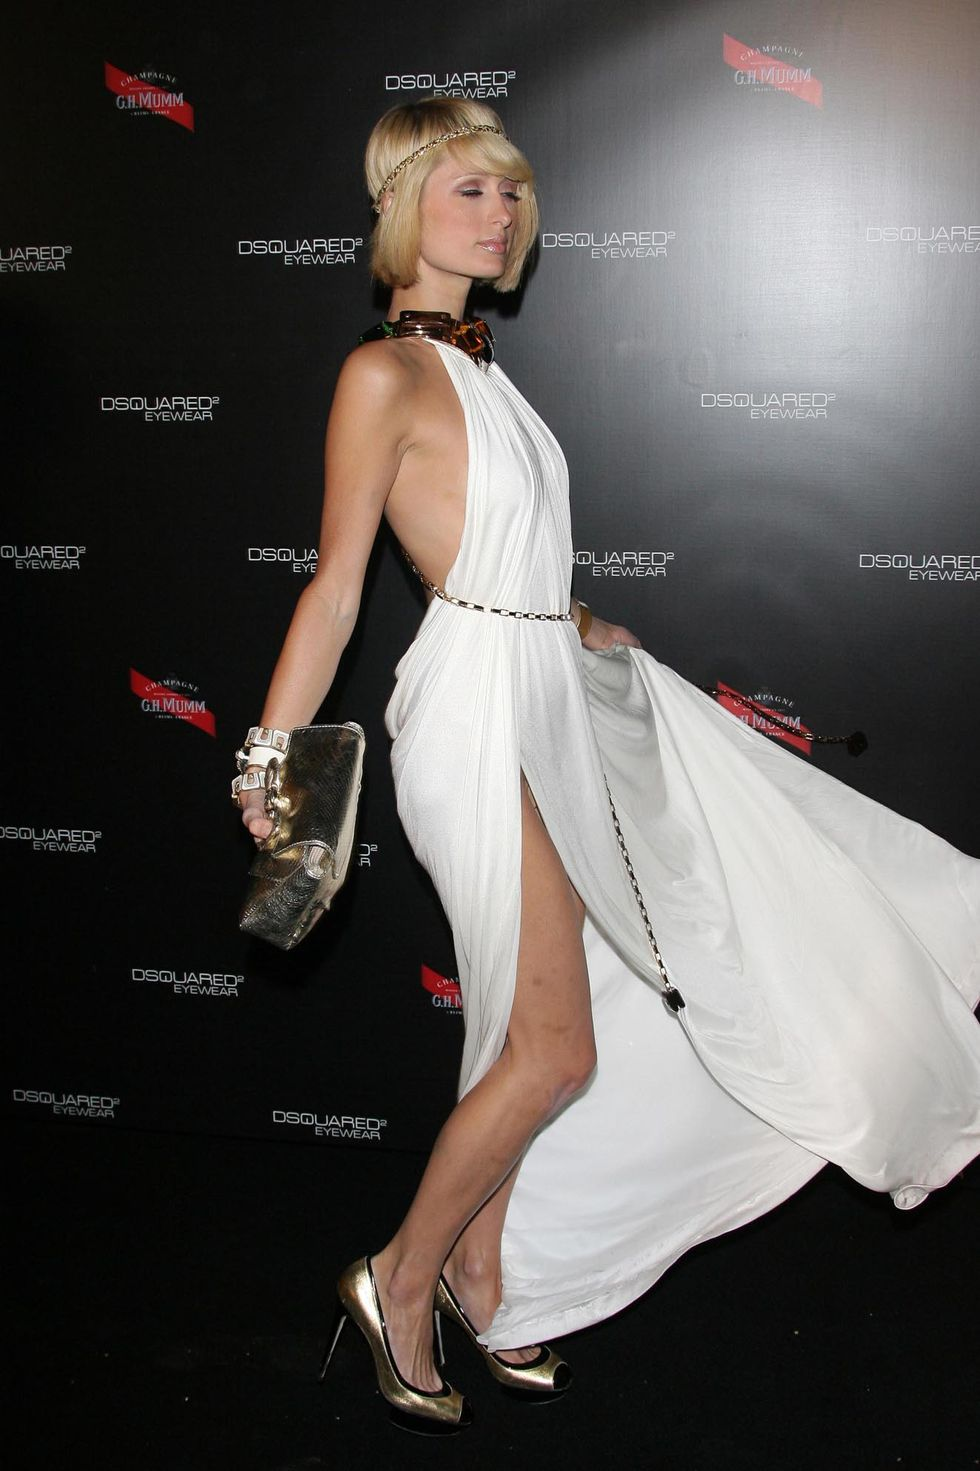 paris-hilton-dsquared-party-in-cannes-01